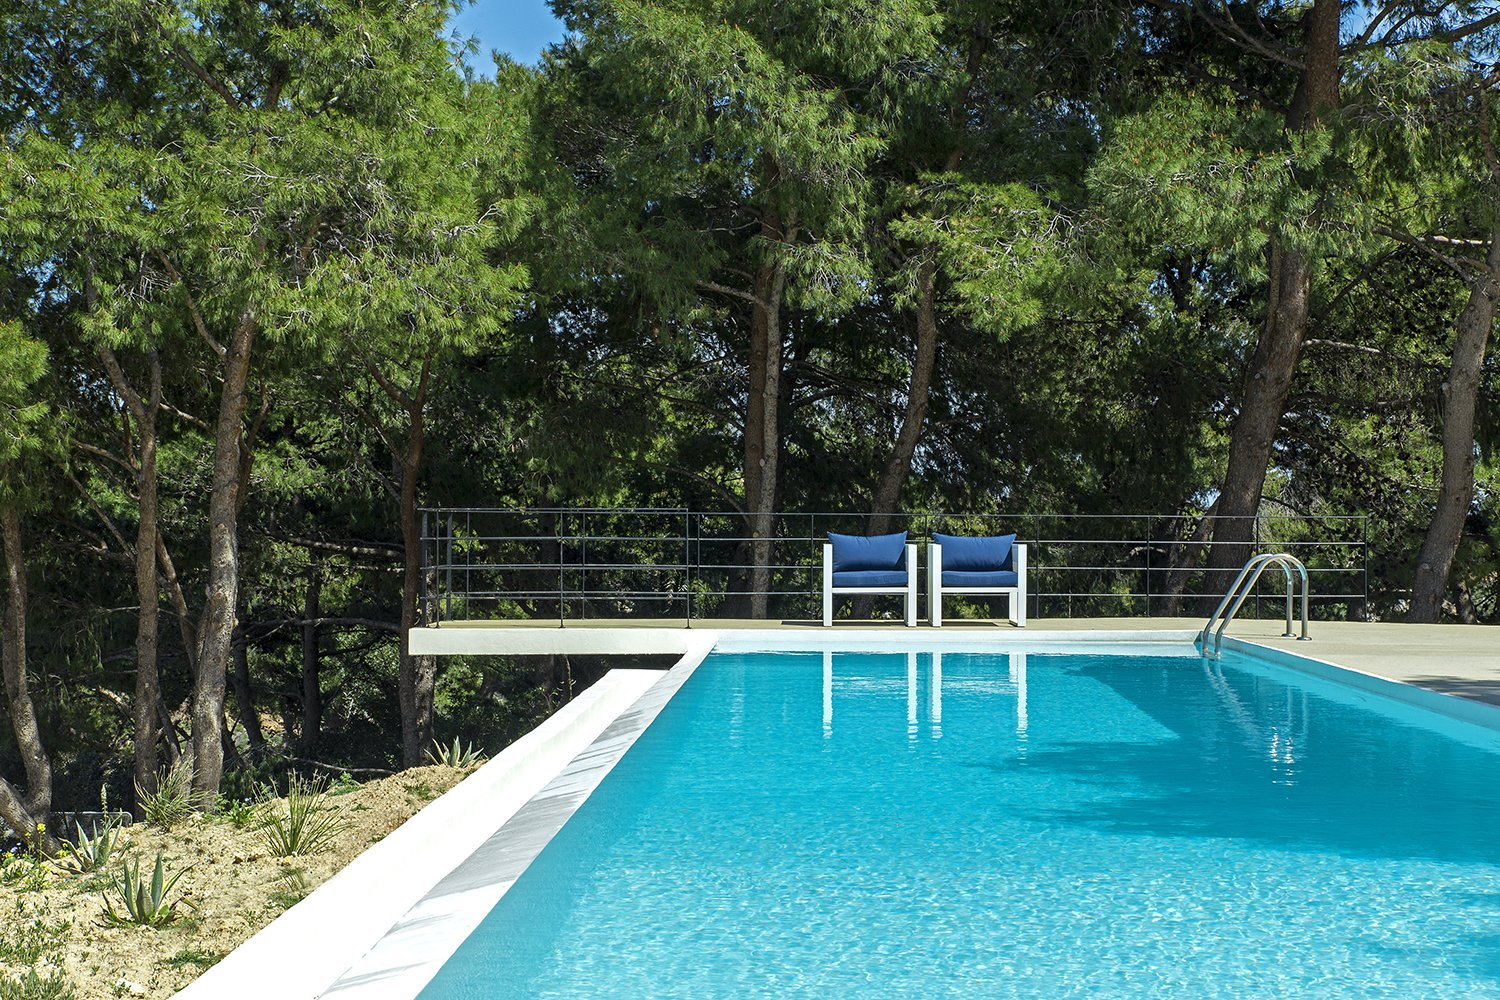 The longitudinal swimming pool reenacts a narrow stream coming through a canyon at a lower level Tagged: Outdoor, Infinity Pools, Tubs, Shower, Lap Pools, Tubs, Shower, Large Patio, Porch, Deck, Metal Fences, Wall, and Trees.  The Wedge House